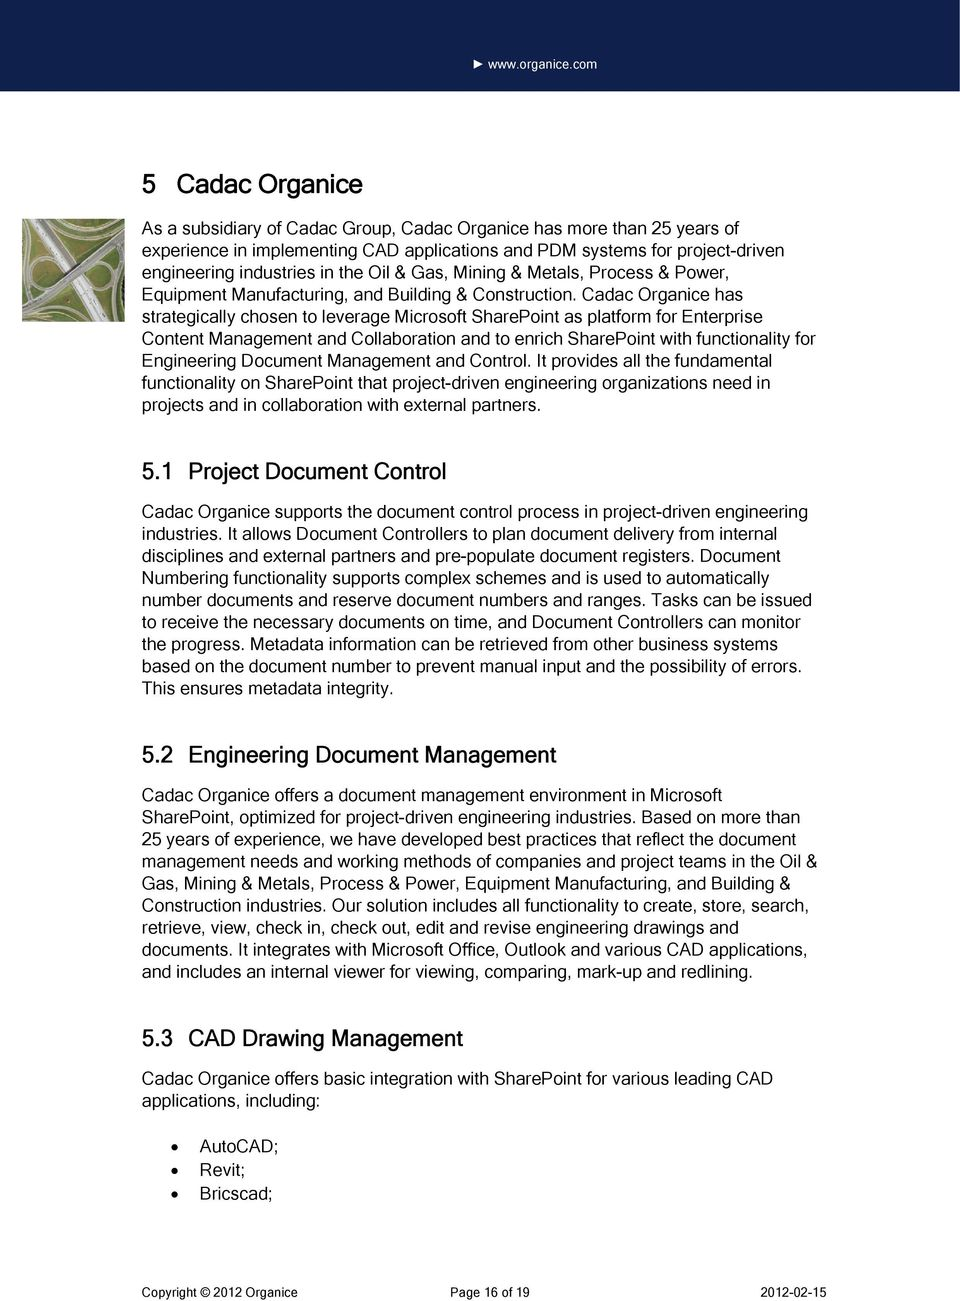 SharePoint for Engineering Document Management & Control - PDF